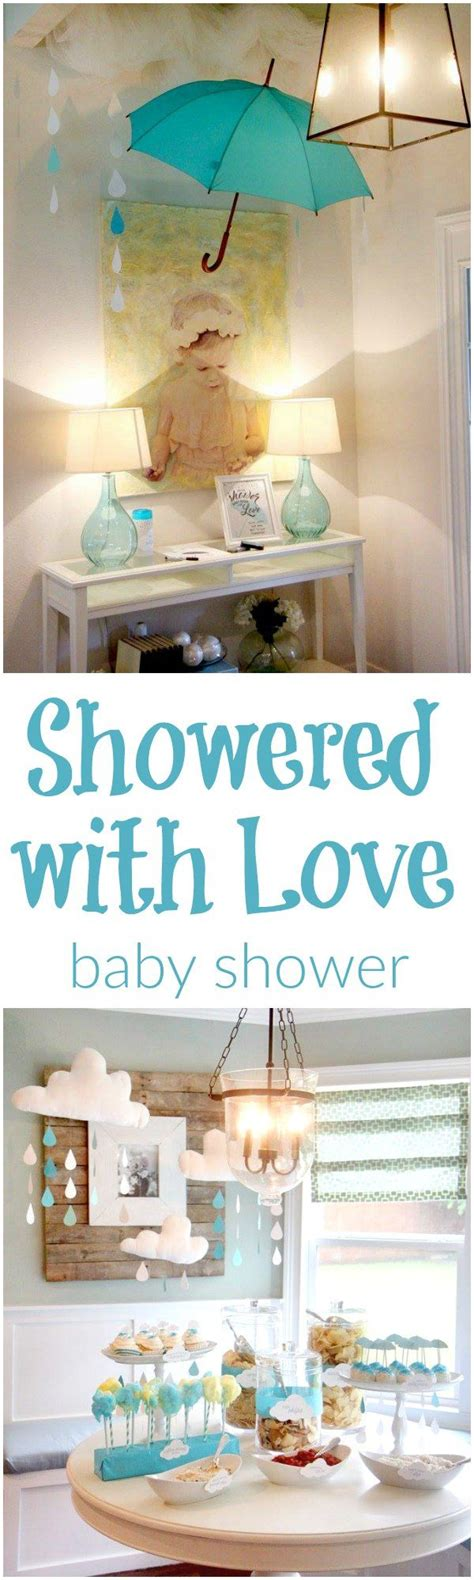 Showered With Baby Shower Theme 25 best ideas about umbrella baby shower on